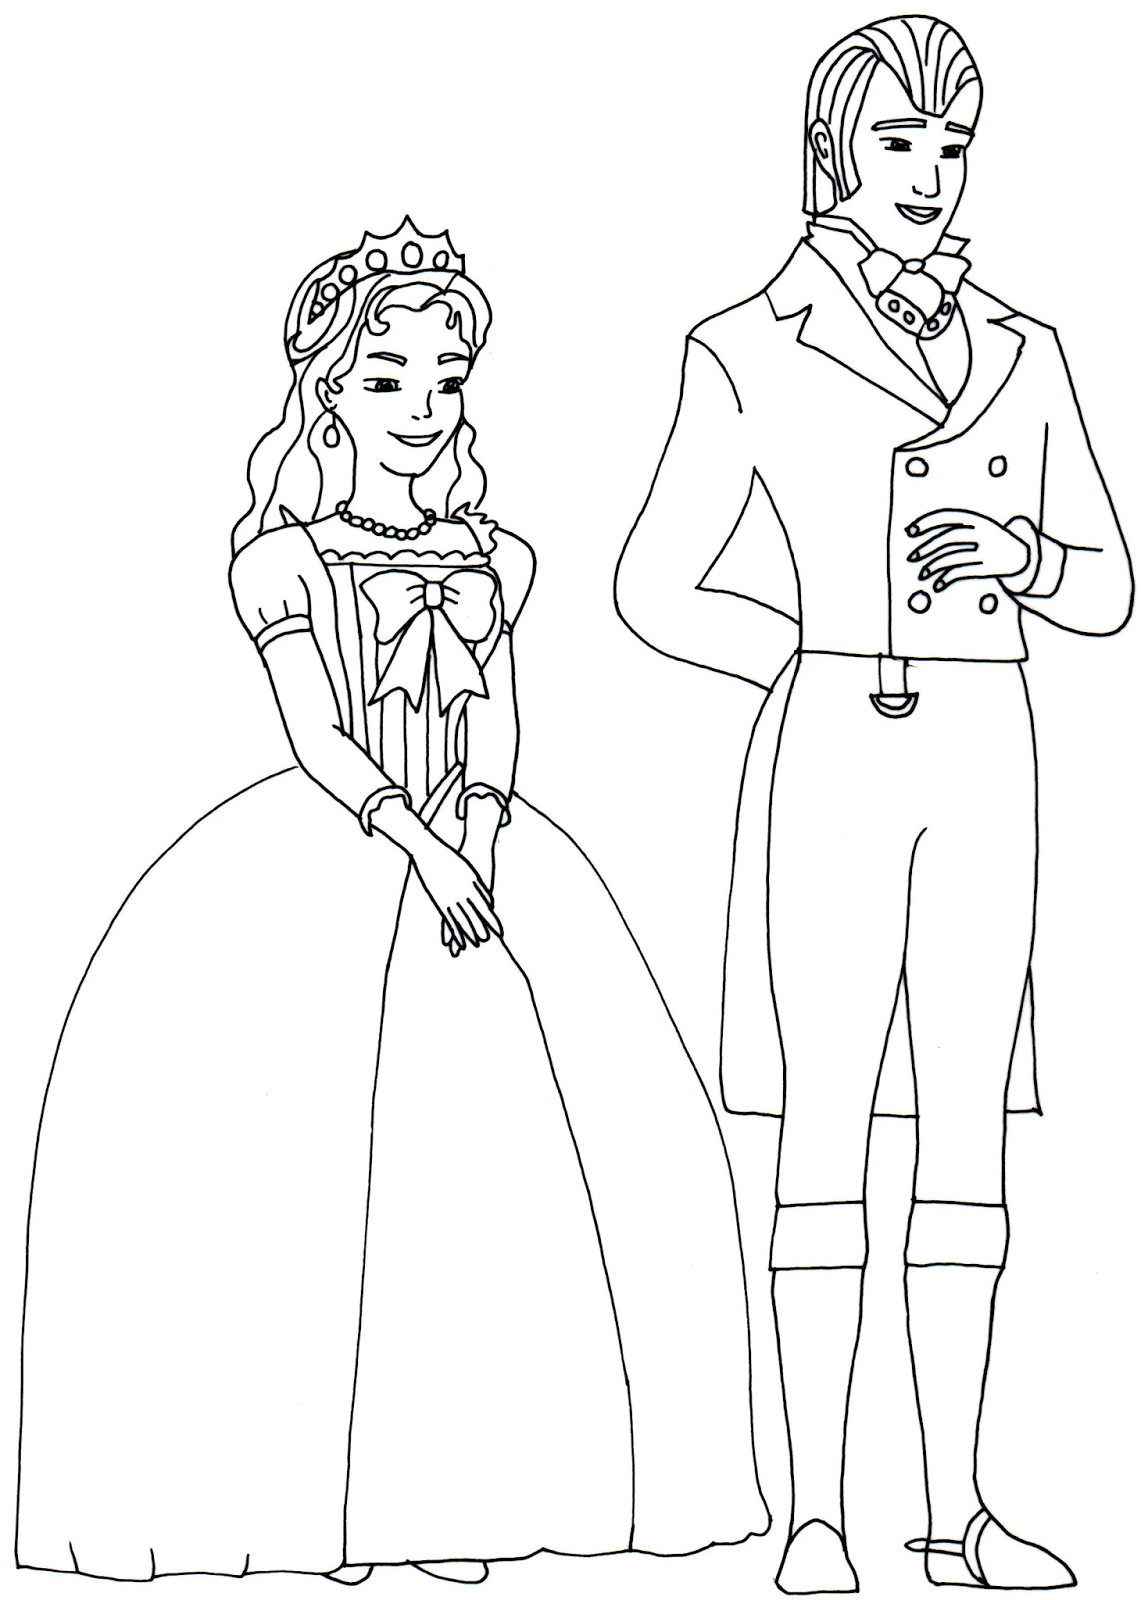 King And Queen Sofia The First Coloring Page Disney Princess Coloring Pages Disney Coloring Pages Printables Cartoon Coloring Pages